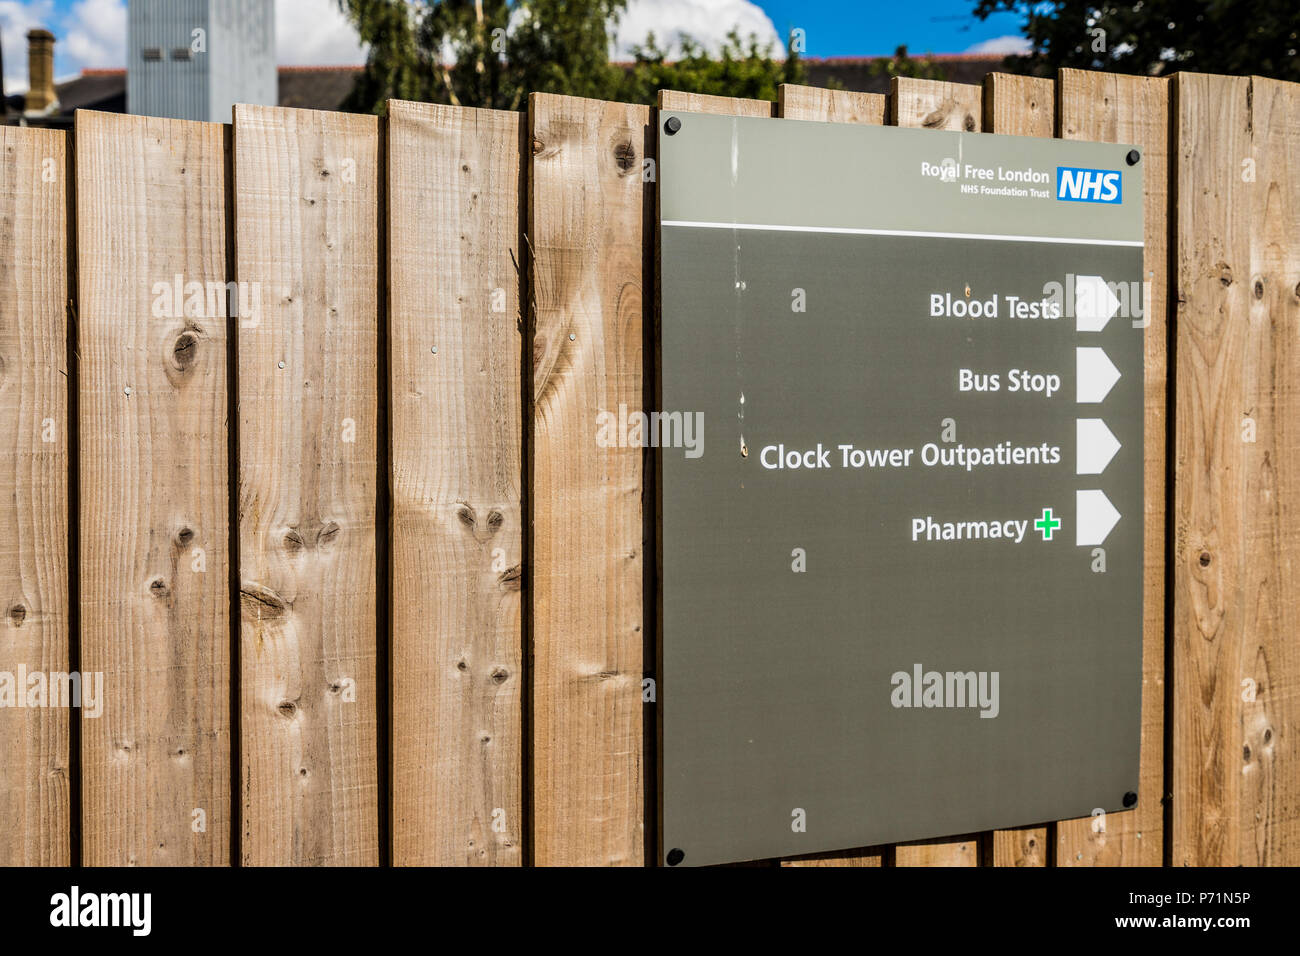 chase farm hospital in Enfield london - Stock Image